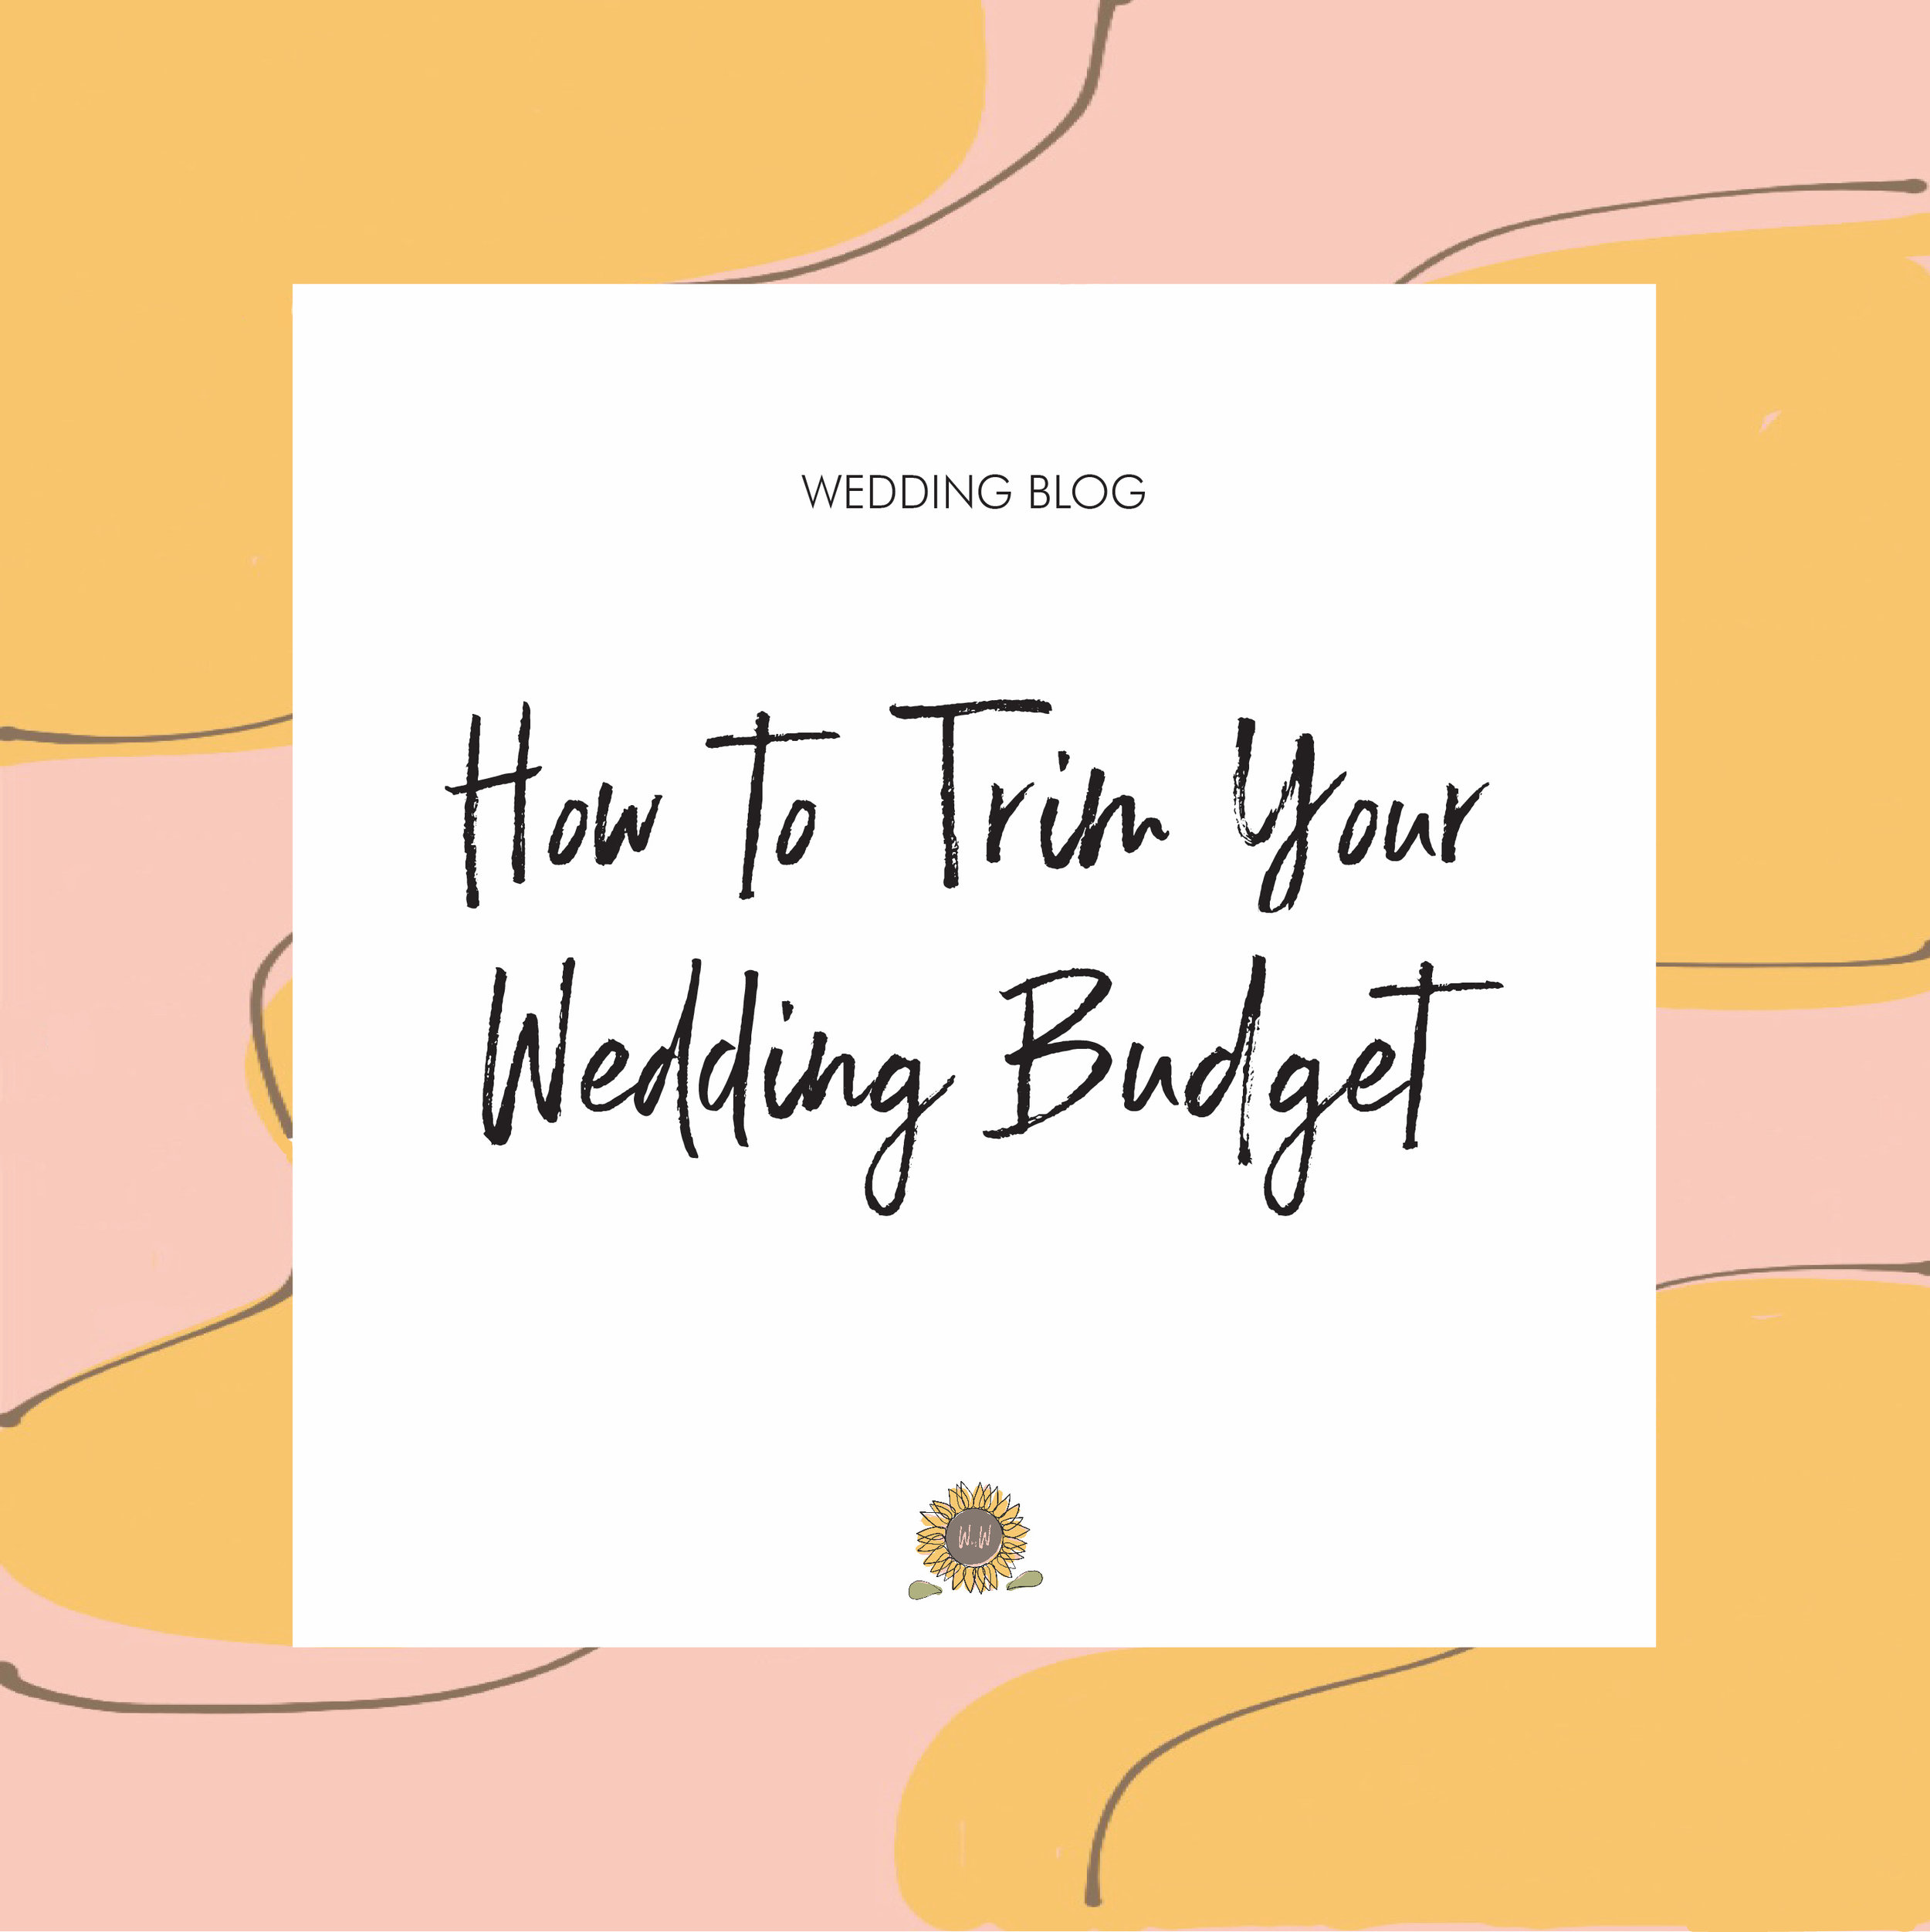 How To Trim Your Wedding Budget.jpg